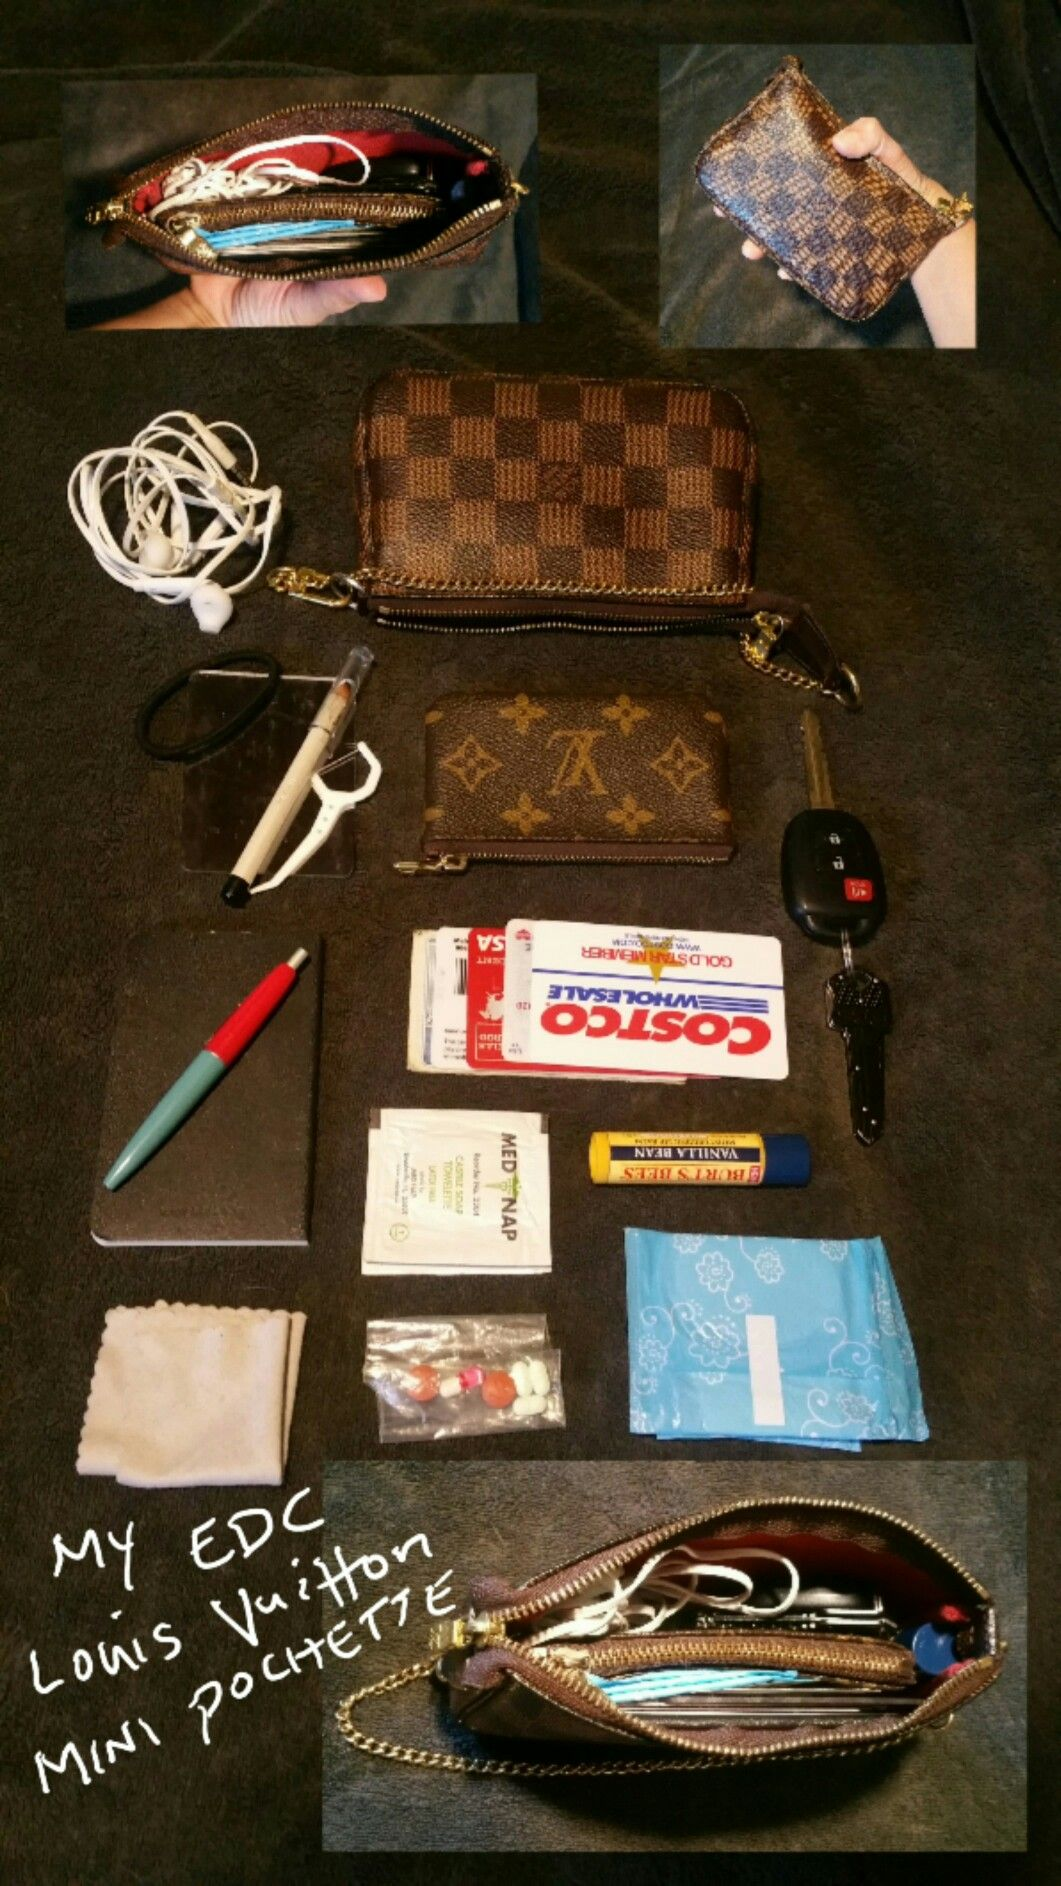 b5ad4e814bb4f My EDC (Every day carry) Louis Vuitton mini pochette accessories The best  little bag ever! It holds all you really need.